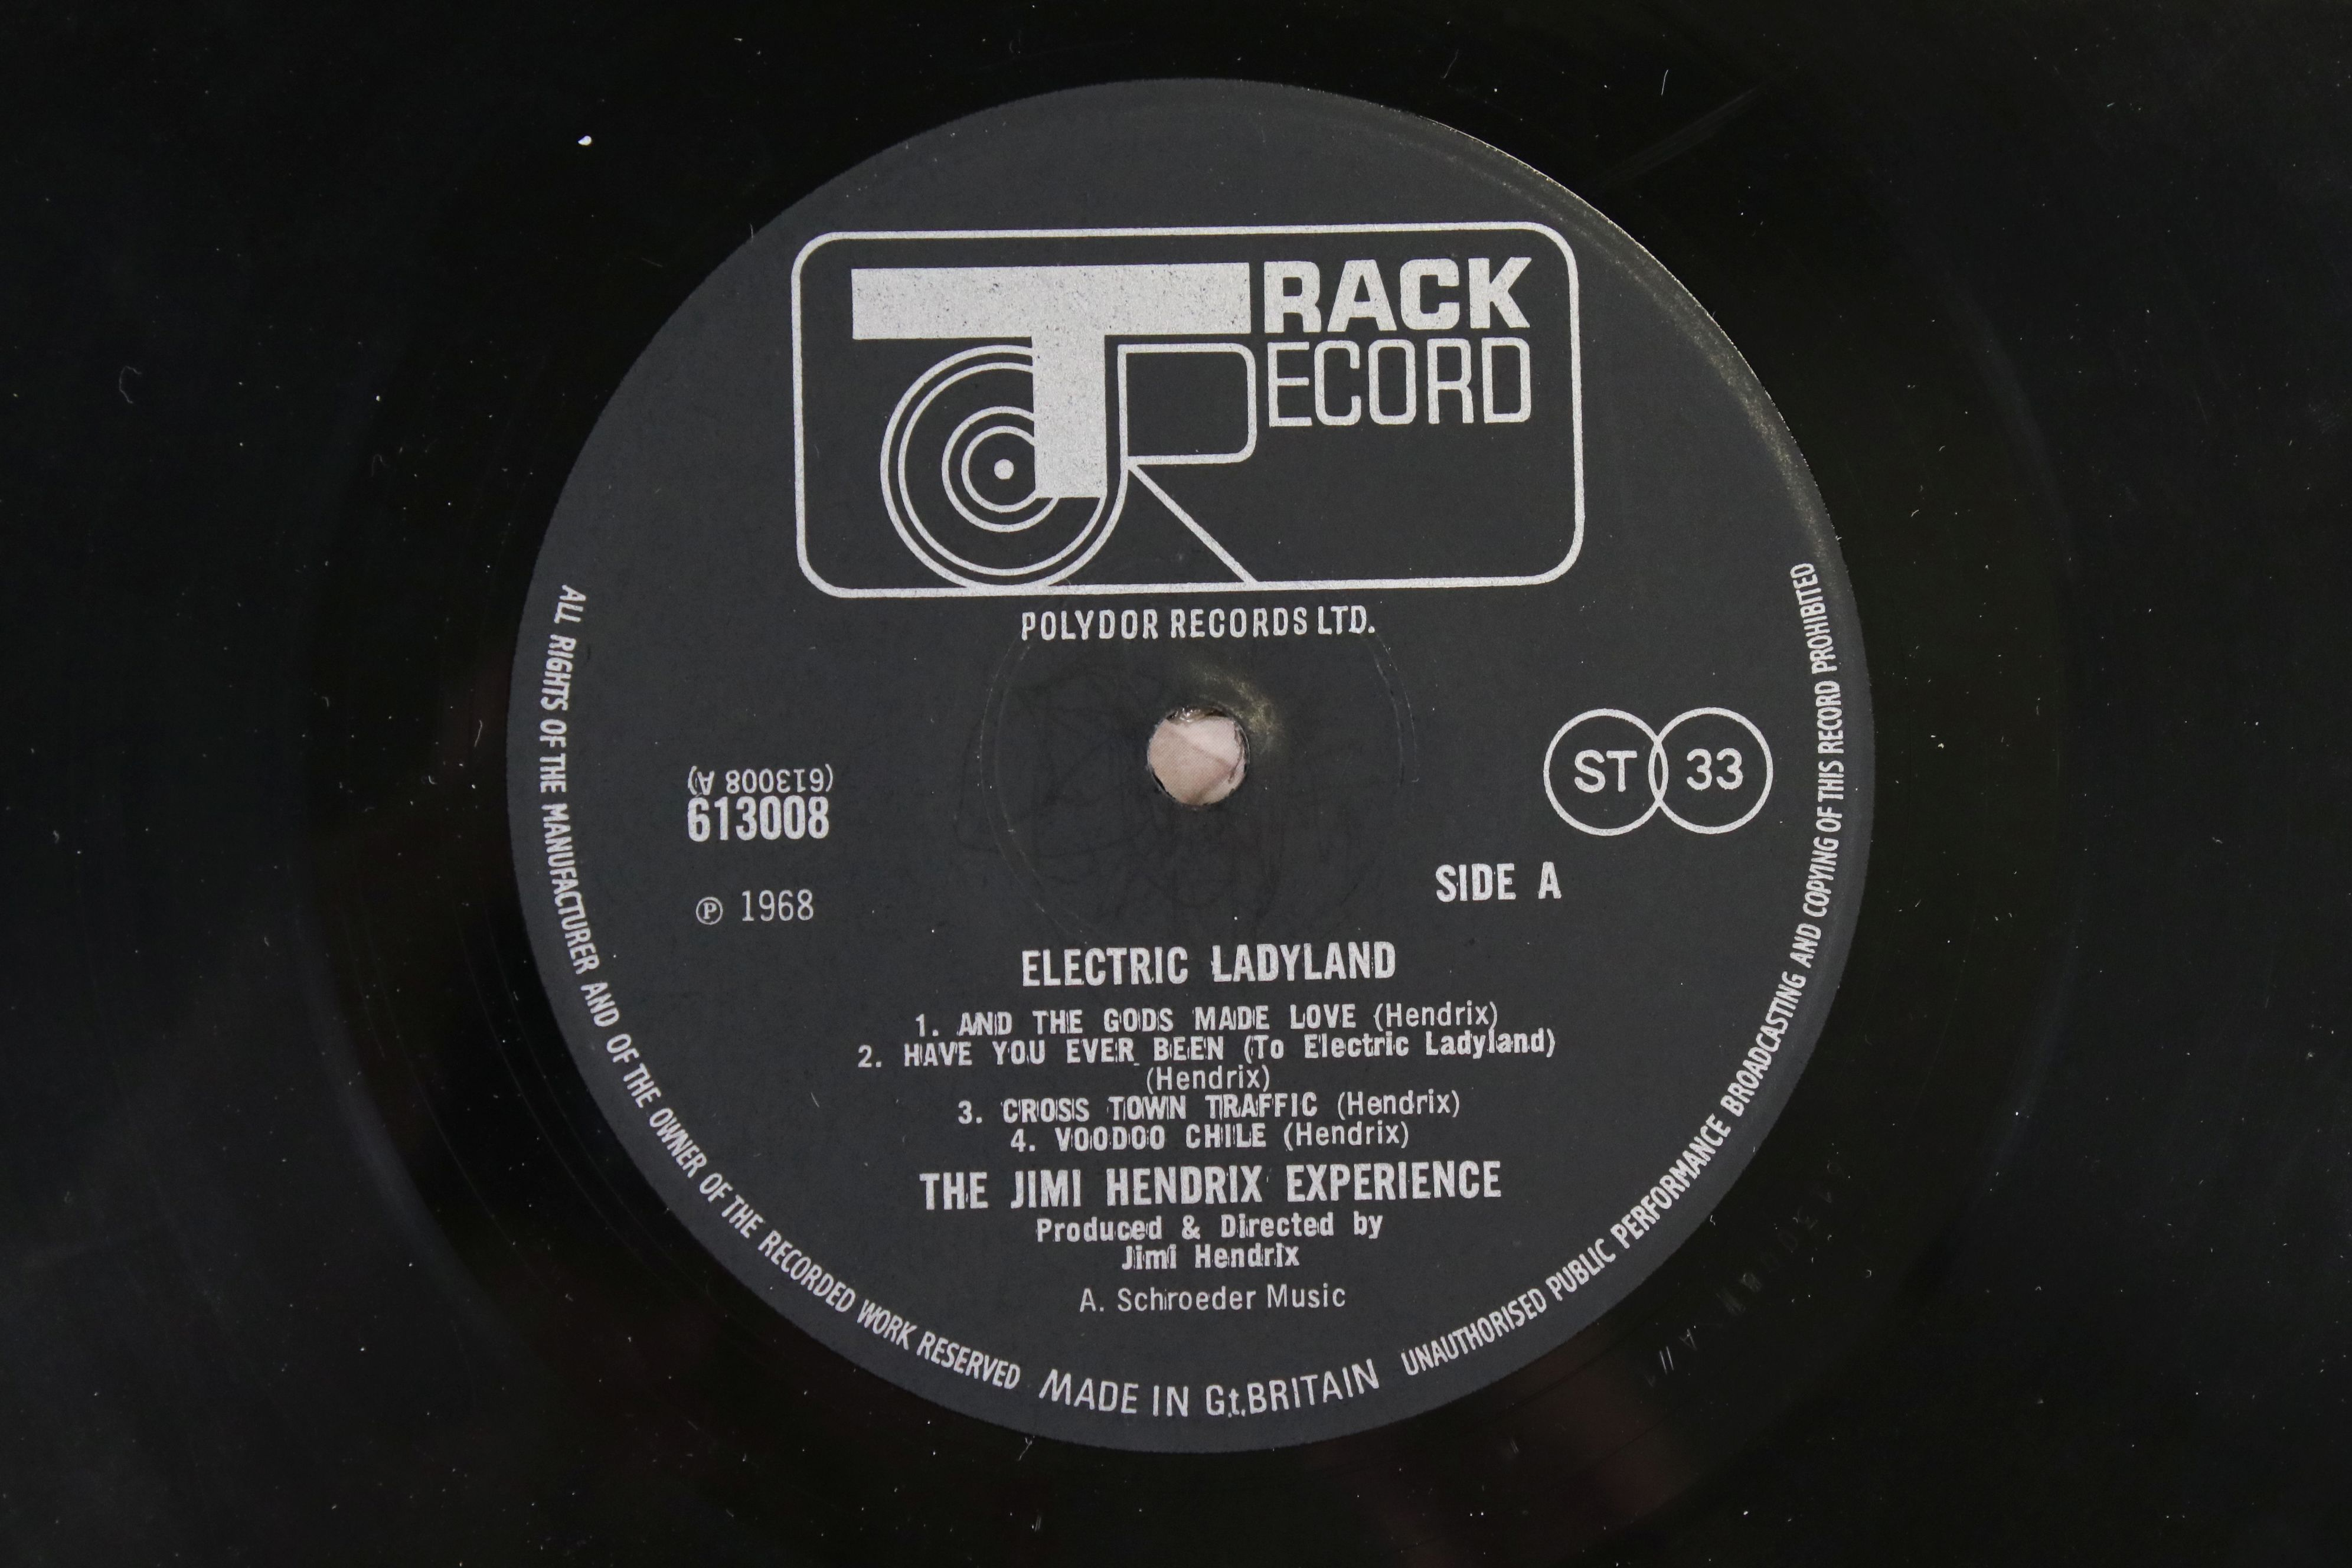 Vinyl - Jimi Hendrix Electric Ladyland on Track 61300819 blue text, Jimi to the right when - Image 3 of 9